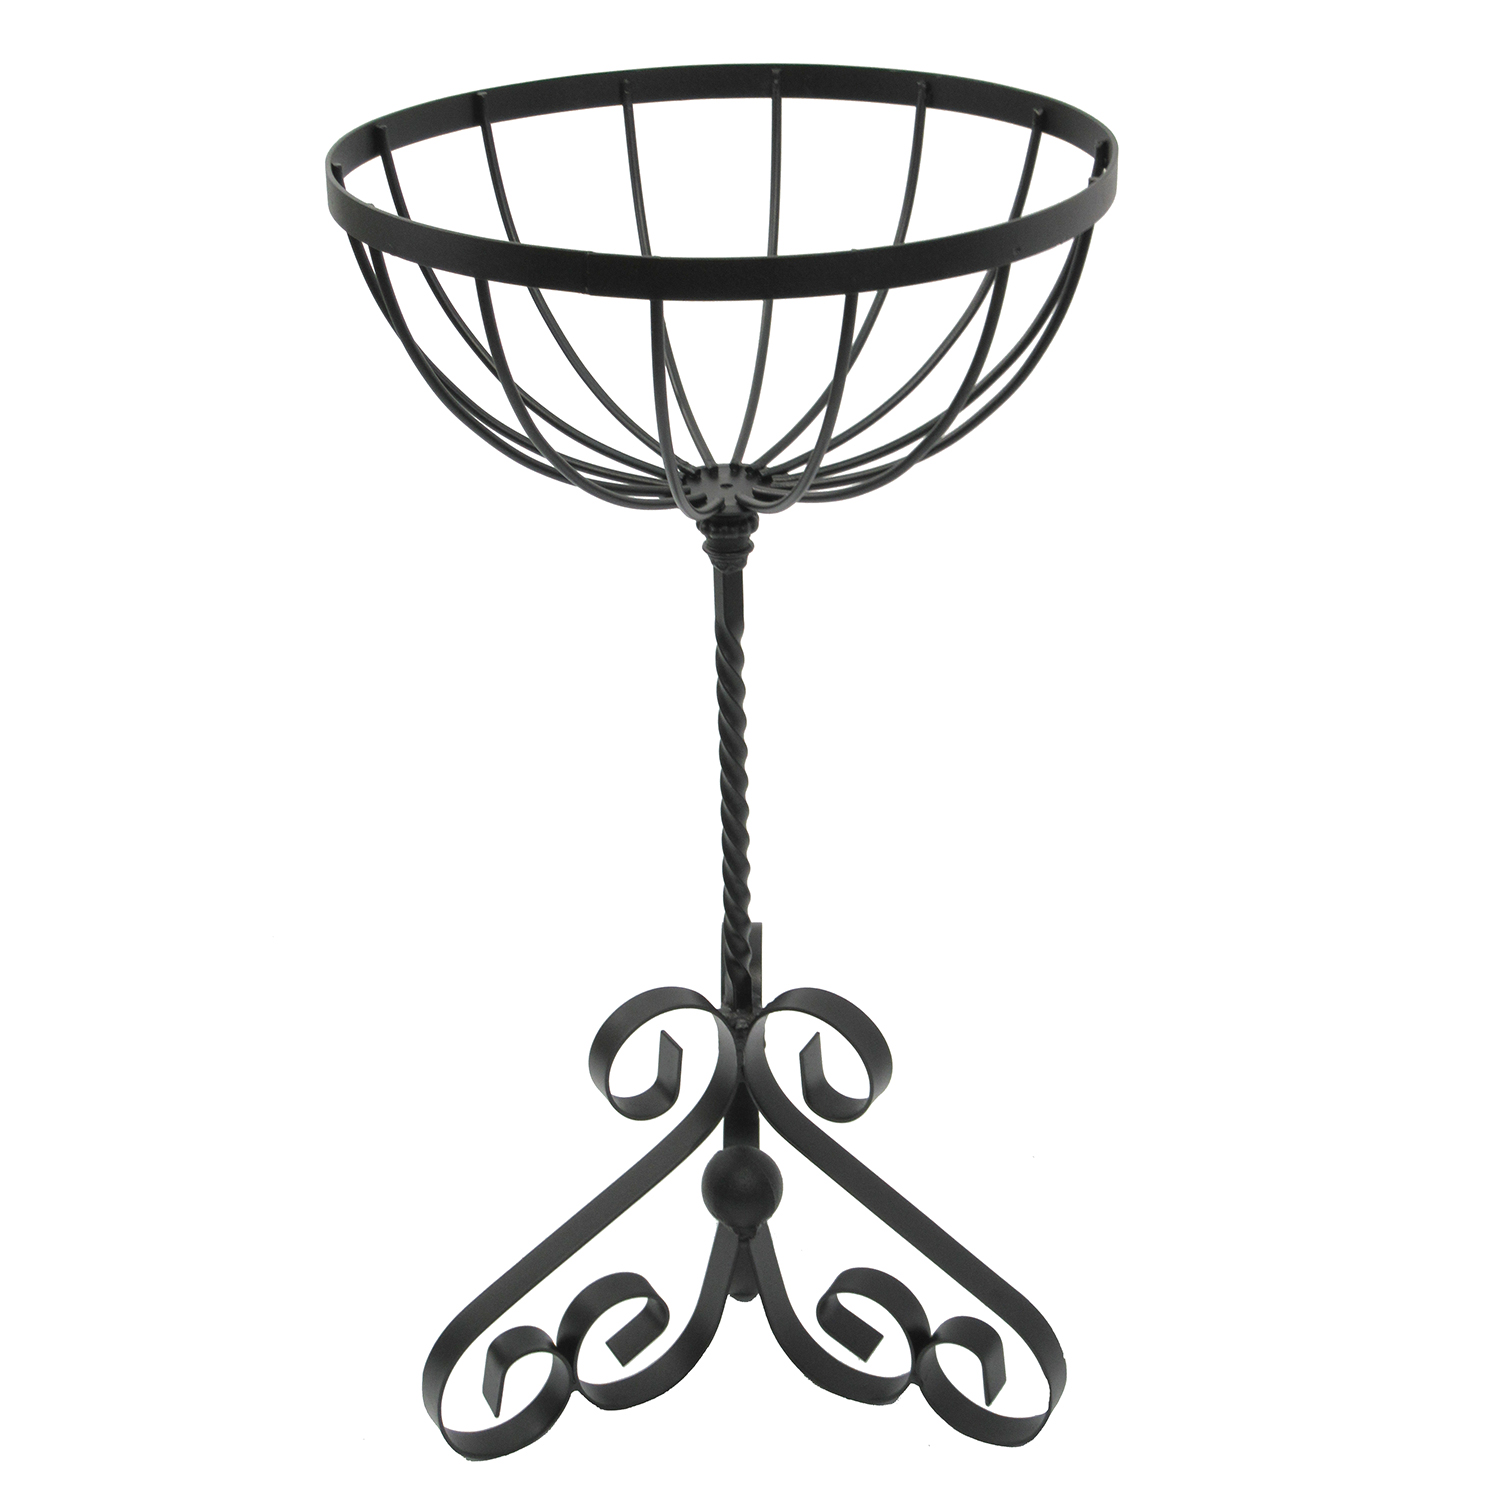 Tall Wrought Iron Plant Stands Plant Stands Border Concepts